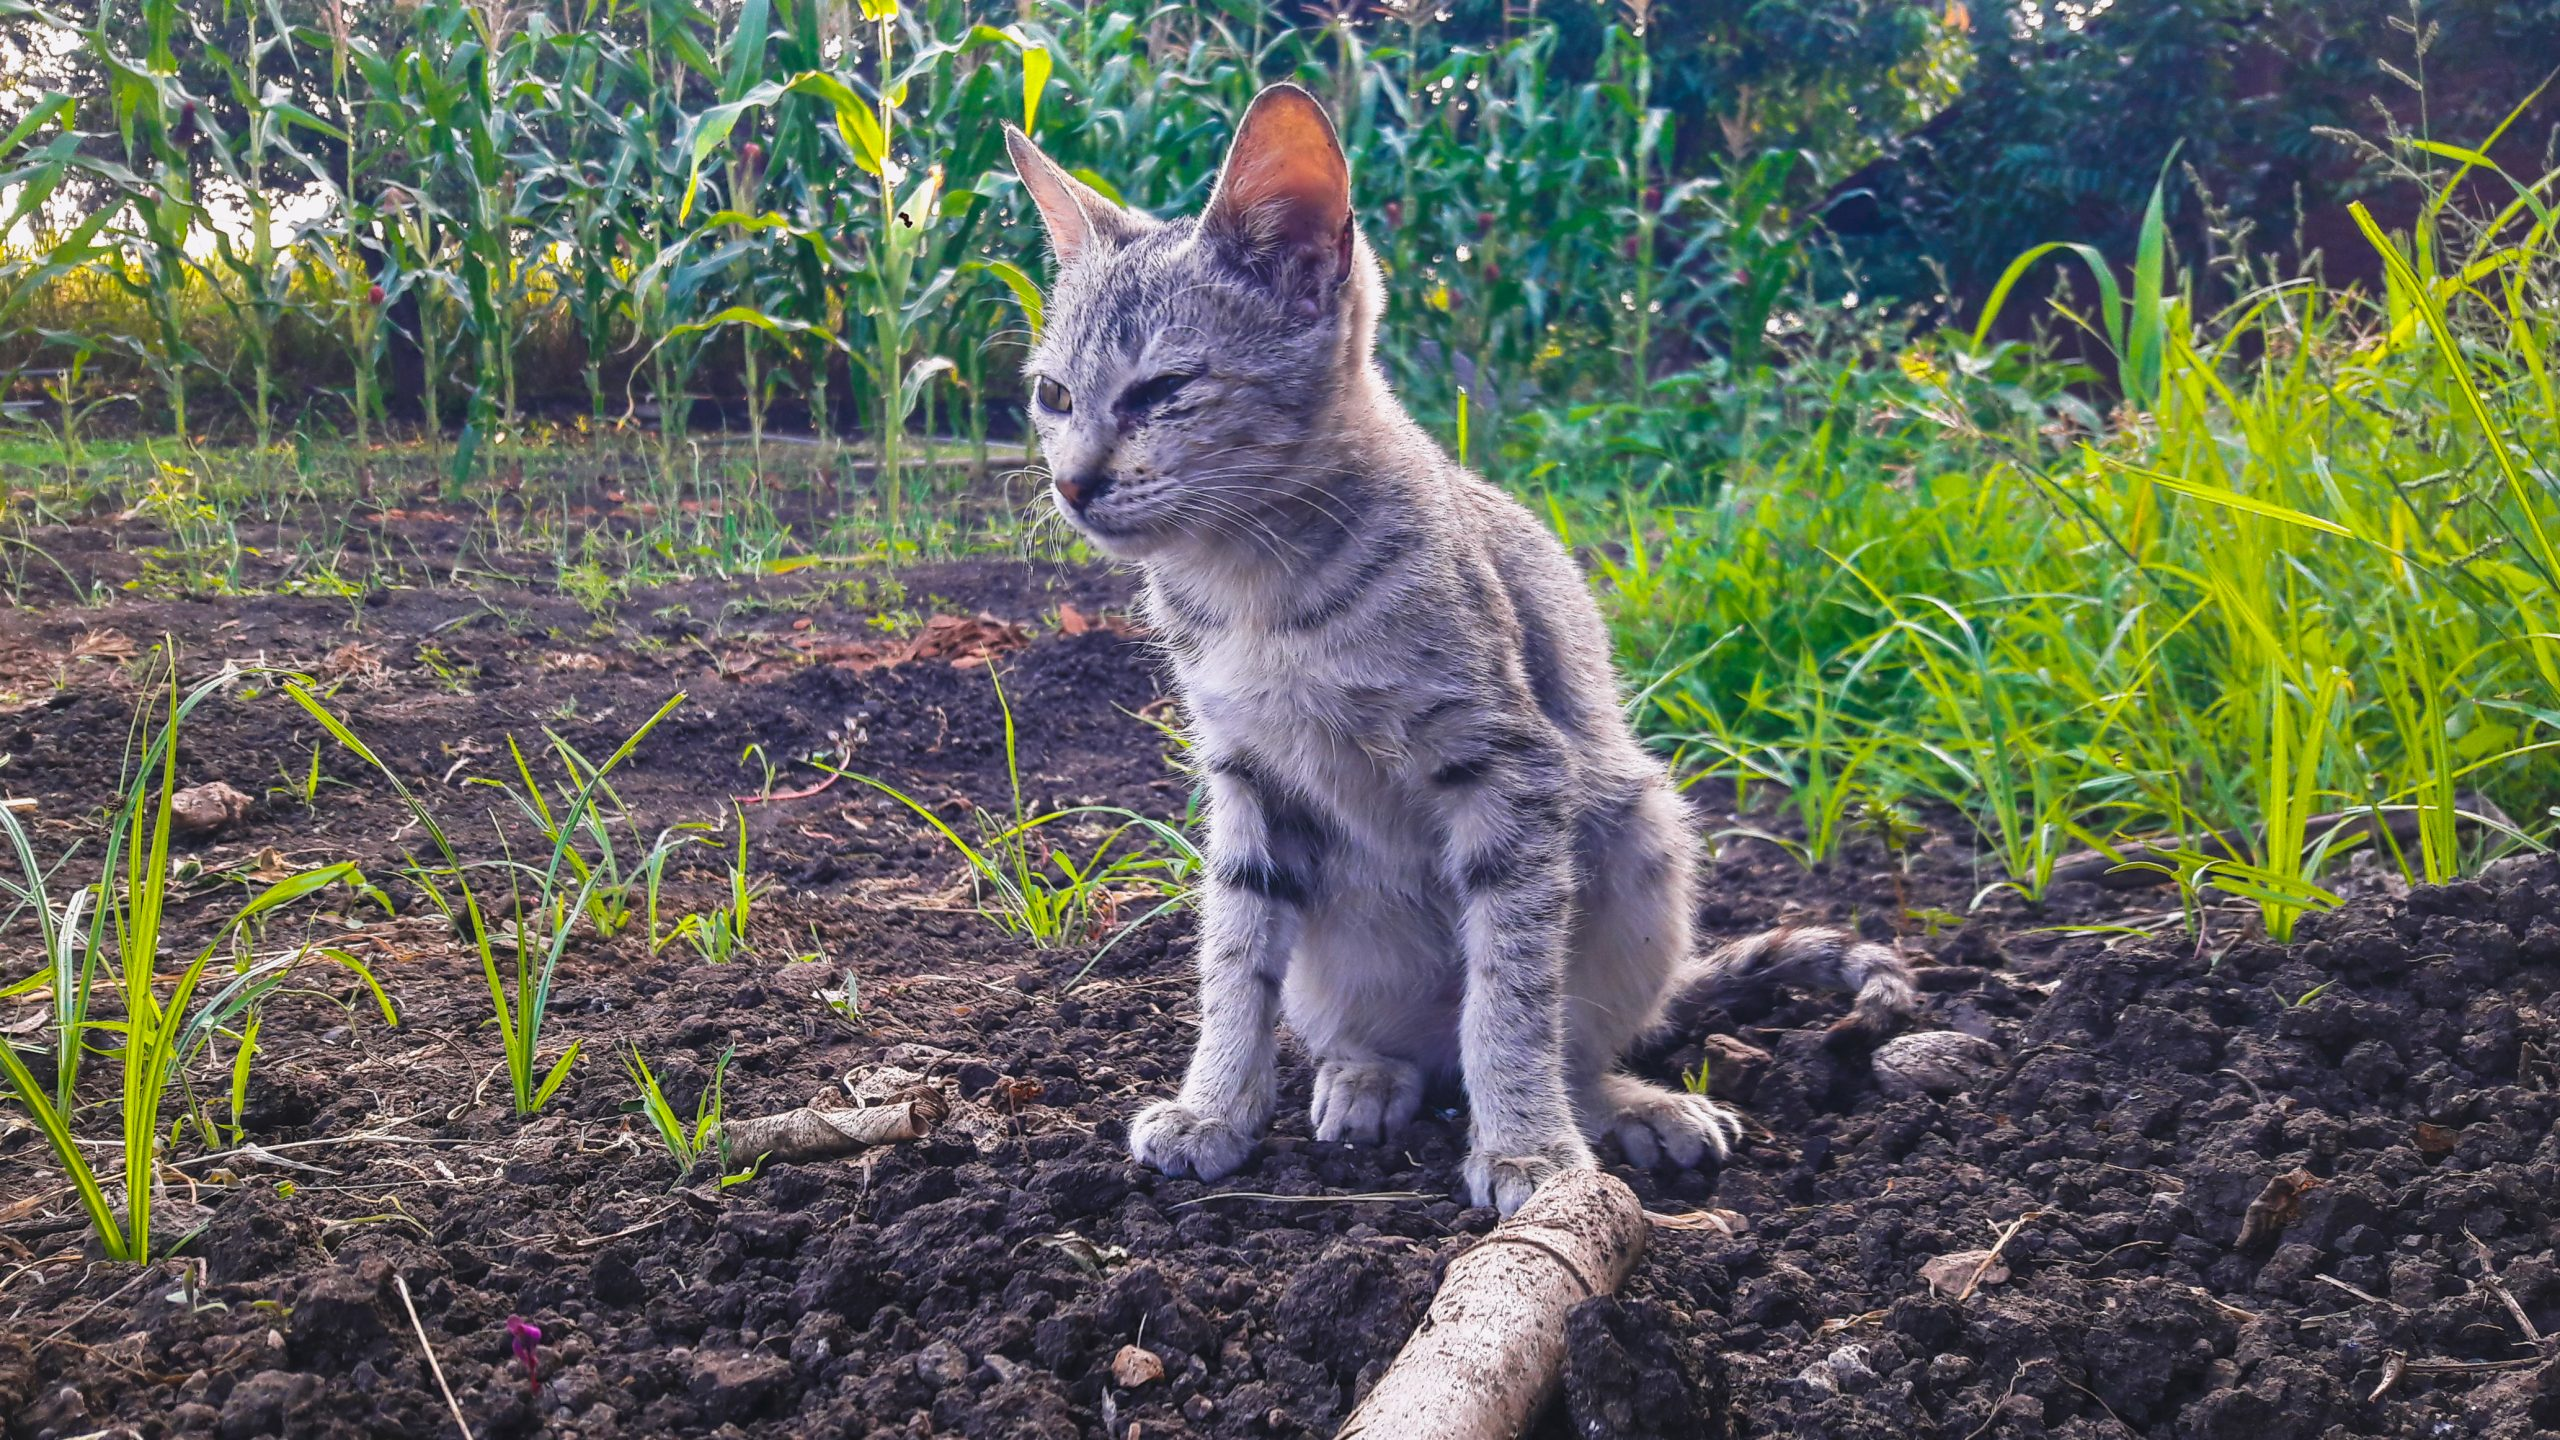 A cat in a field